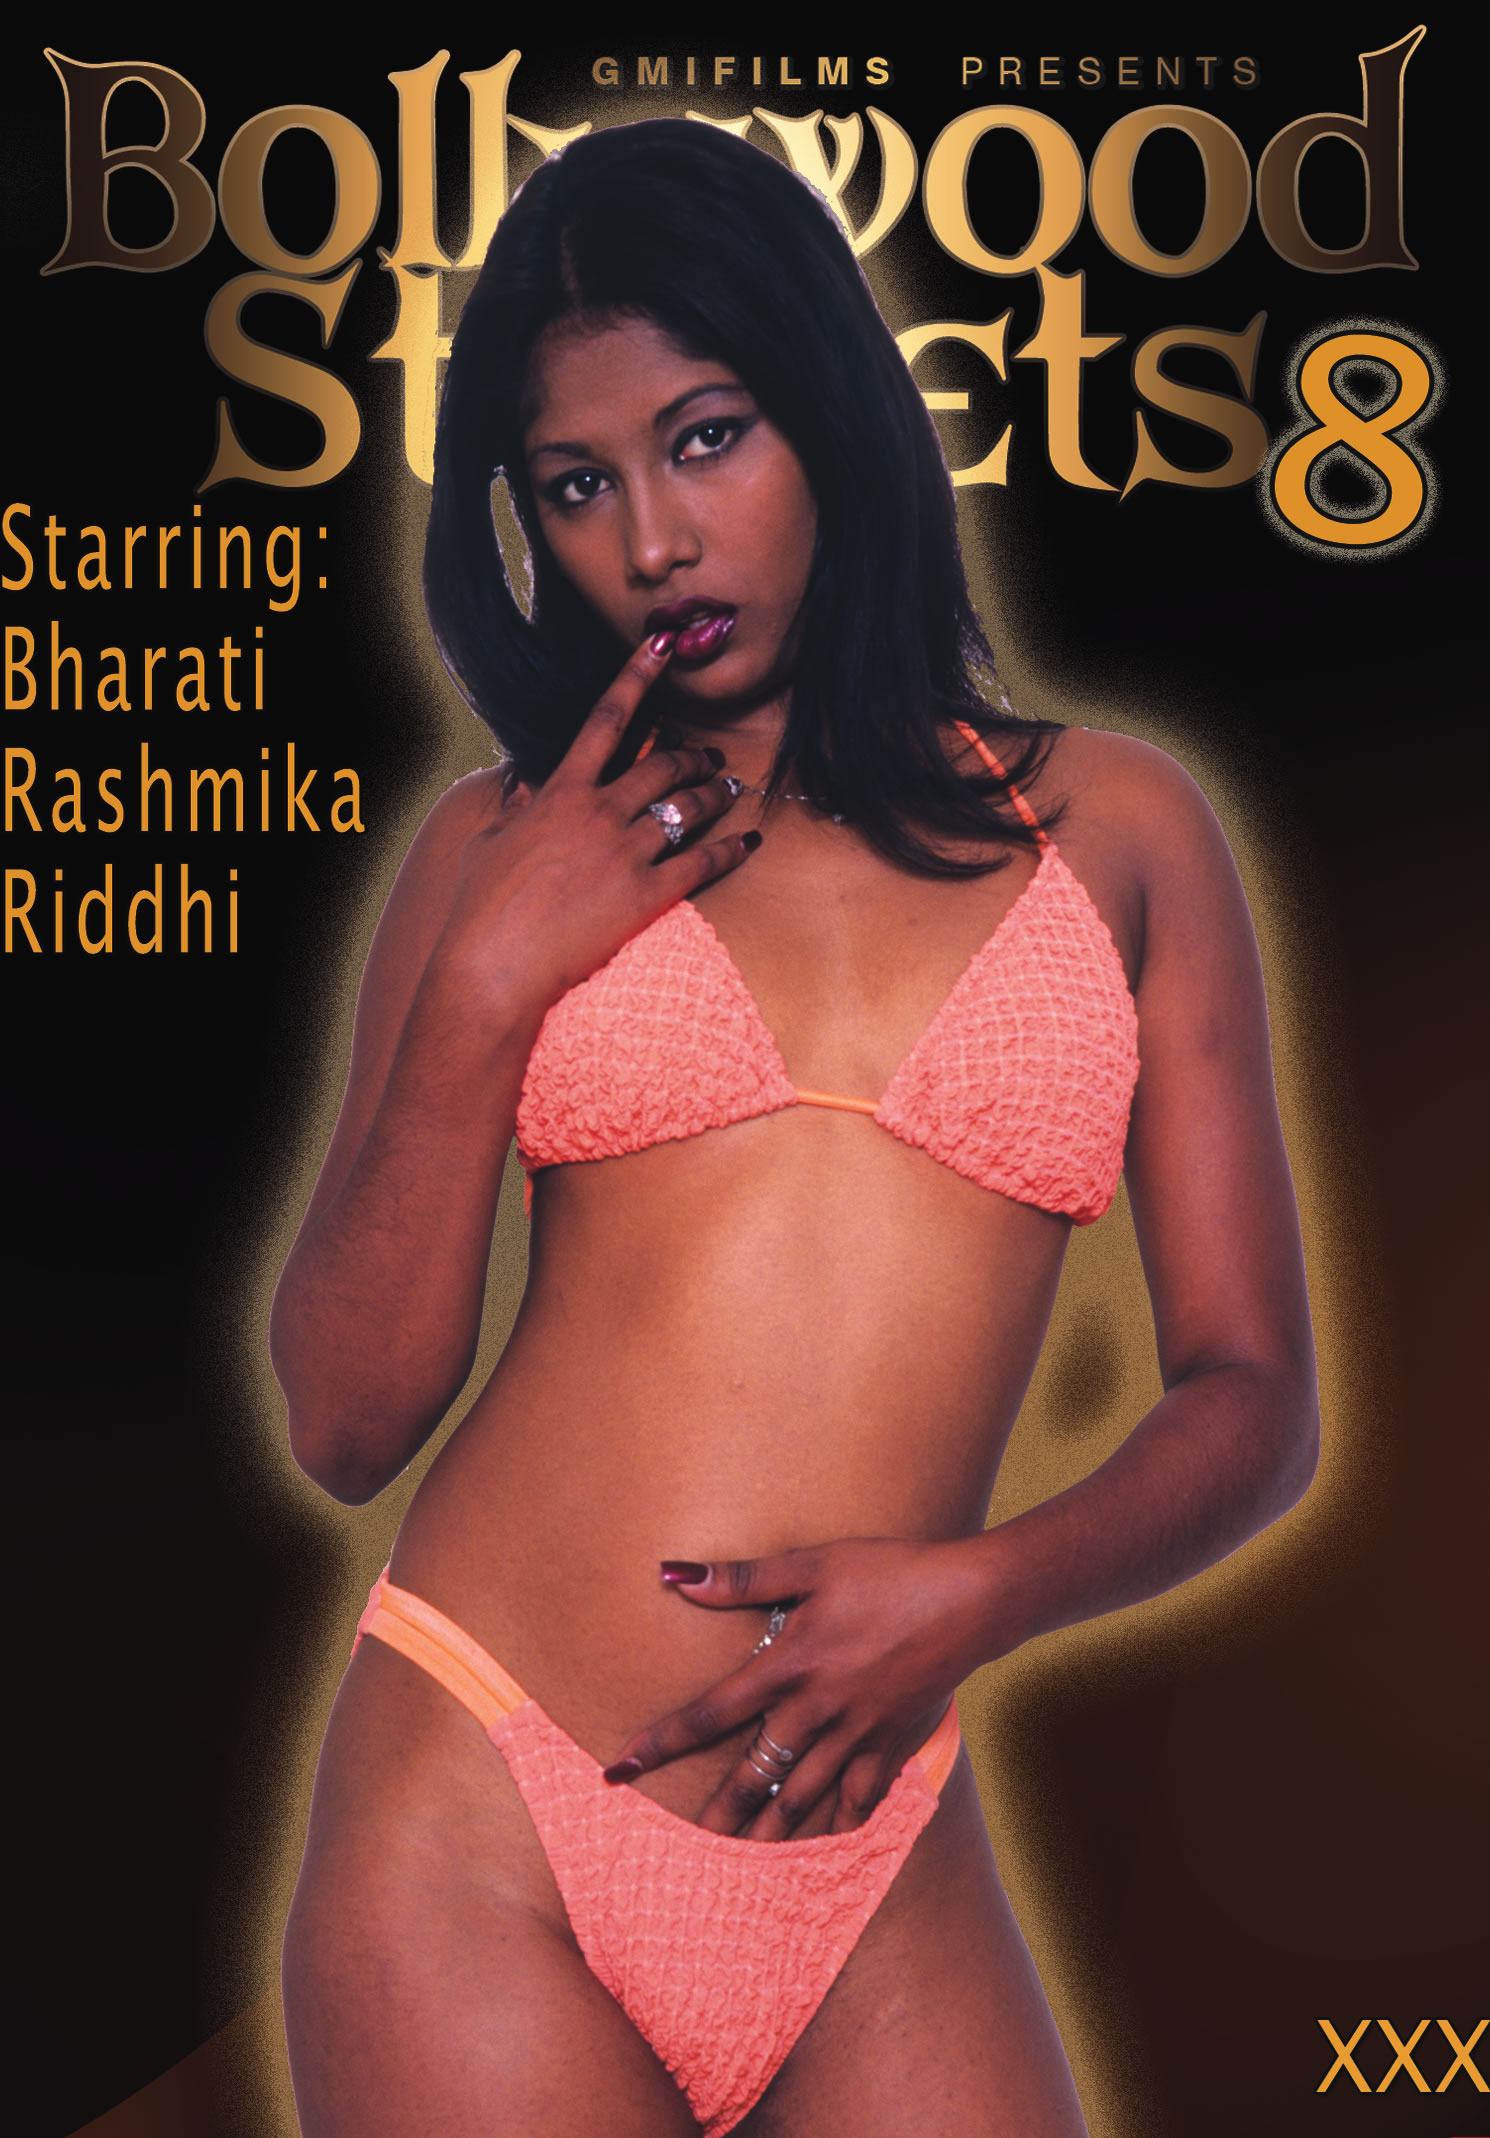 Bollywood Starlets 8